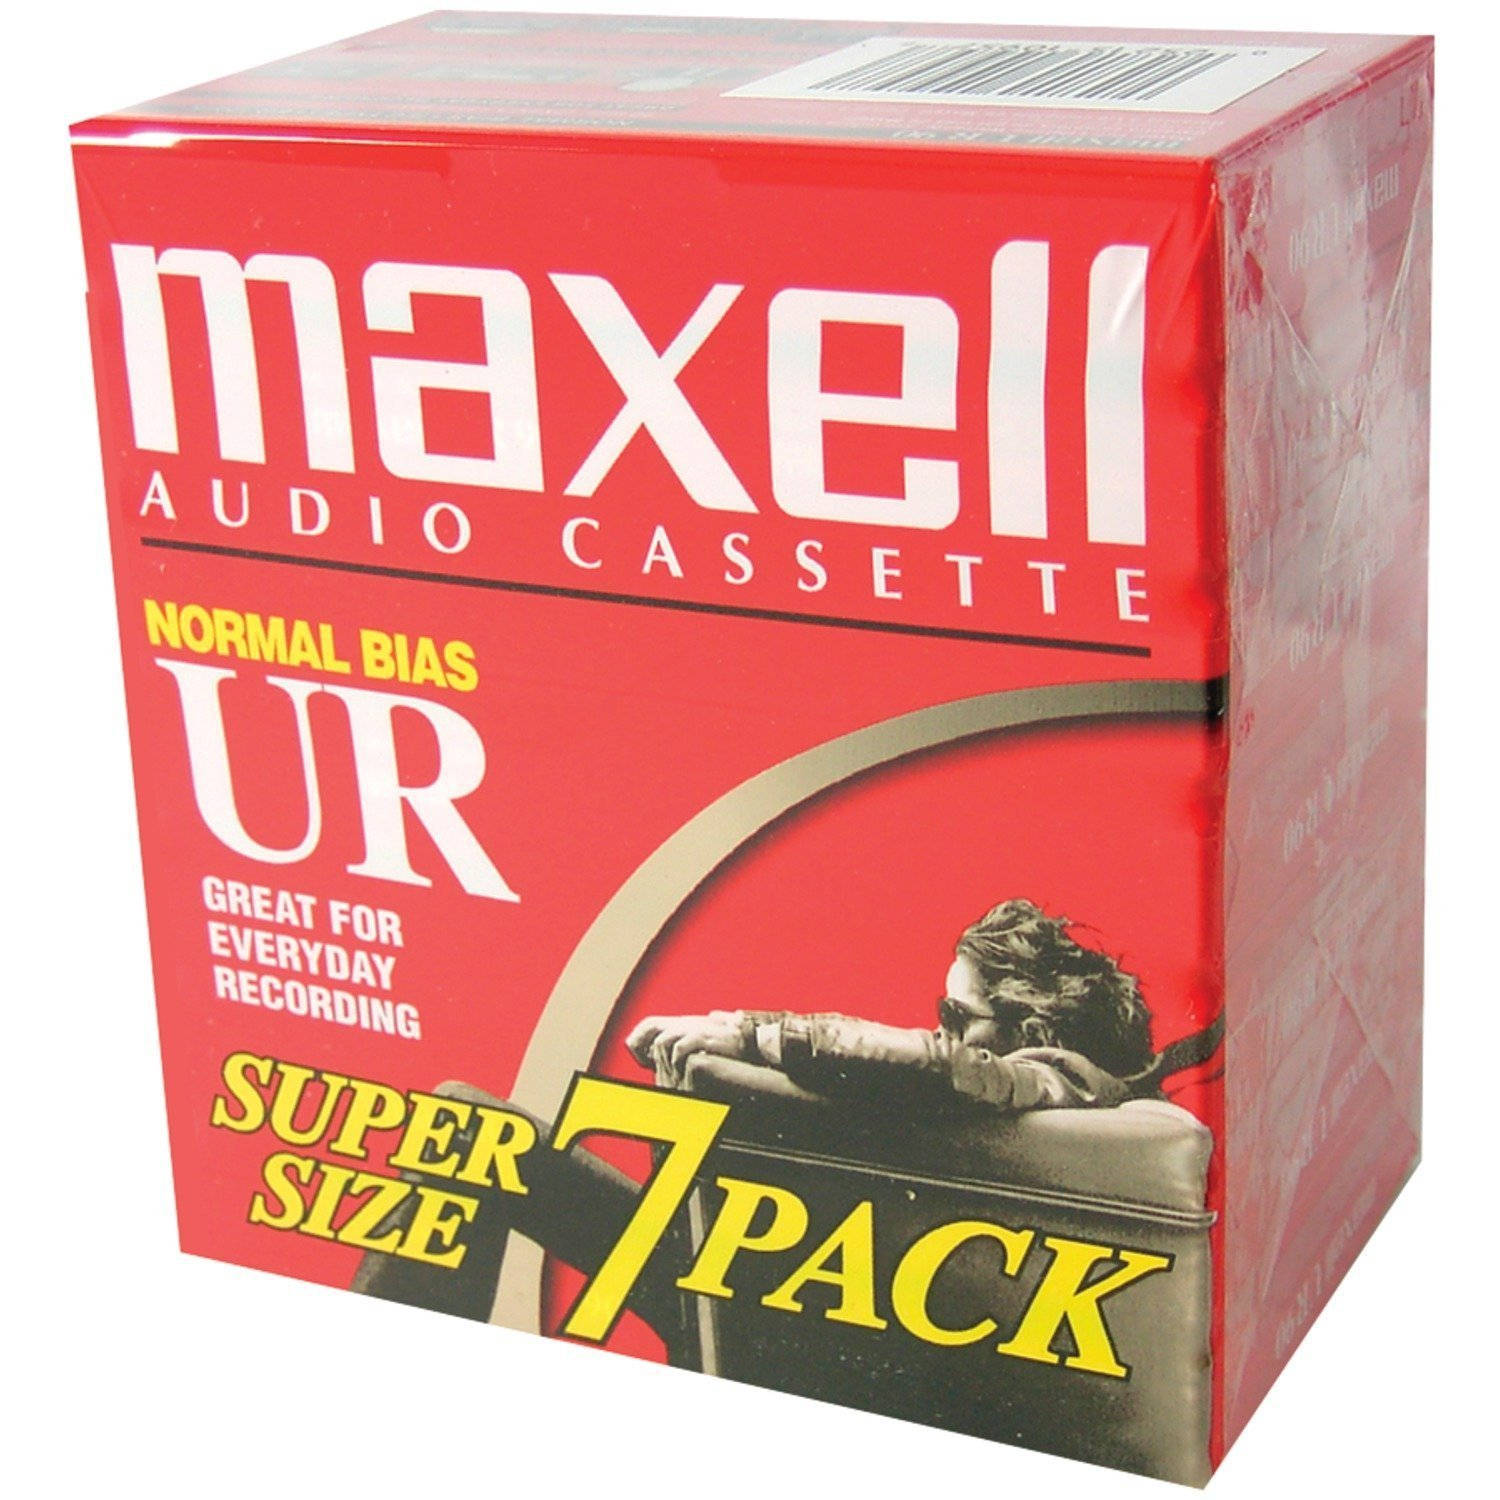 UR-90 Blank Audio Cassette Tape - 14 Pack (108575) By Maxell